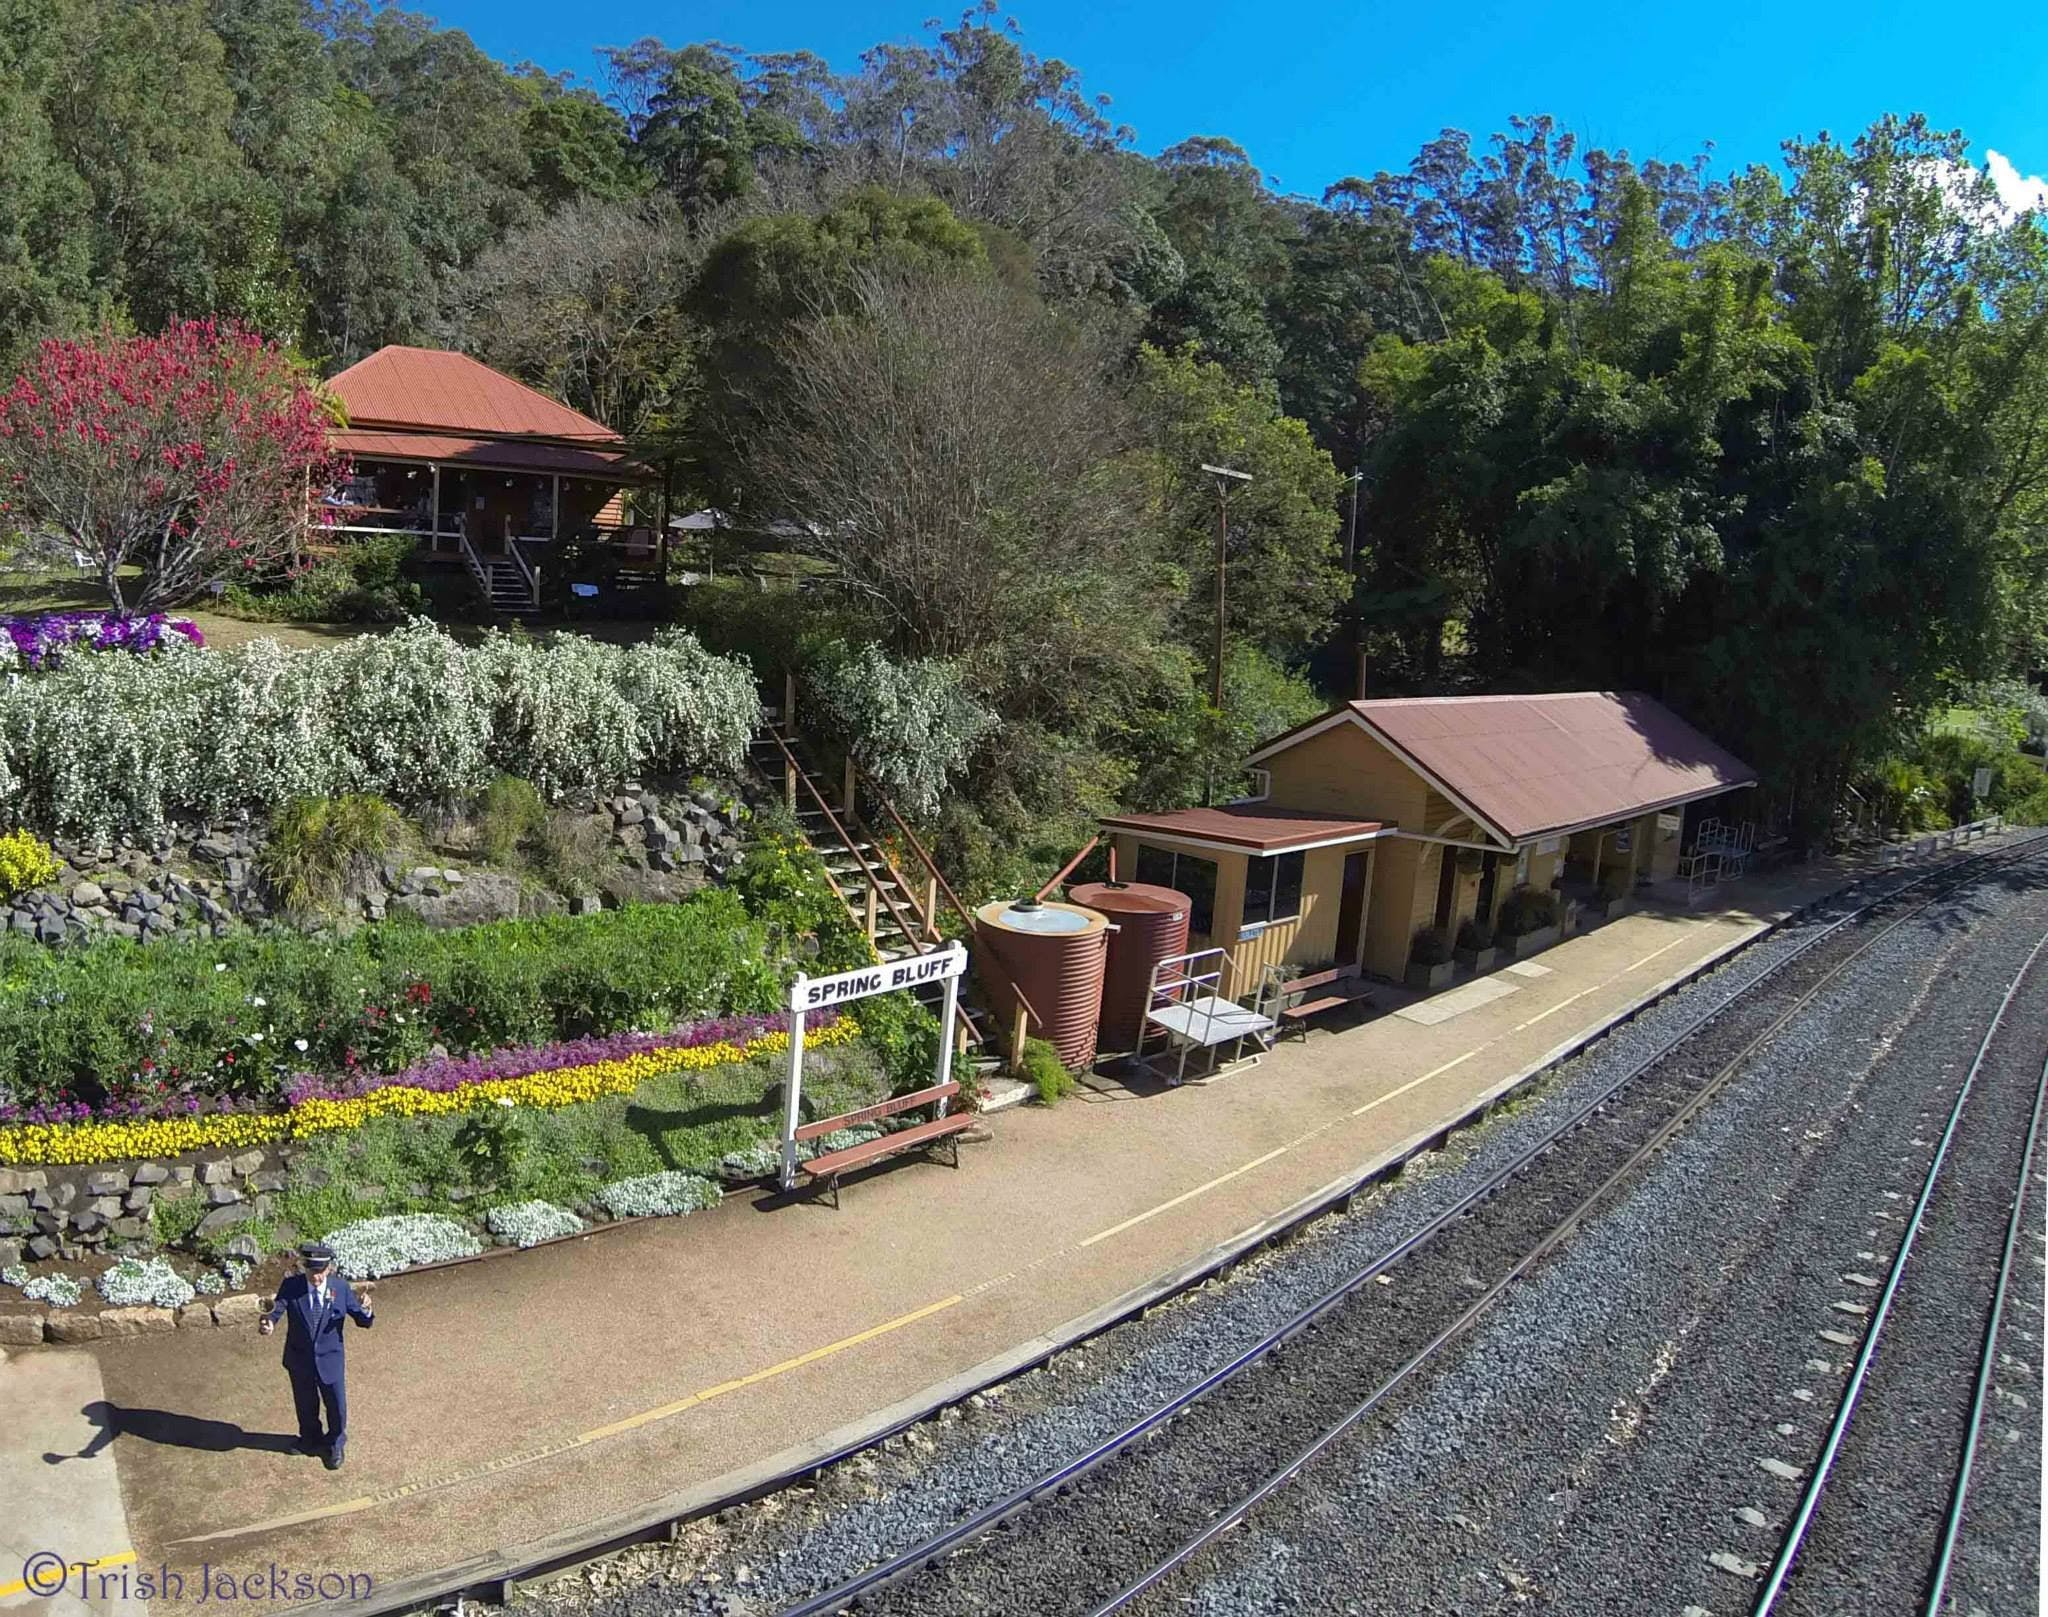 Spring Bluff Railway Station - Accommodation Batemans Bay